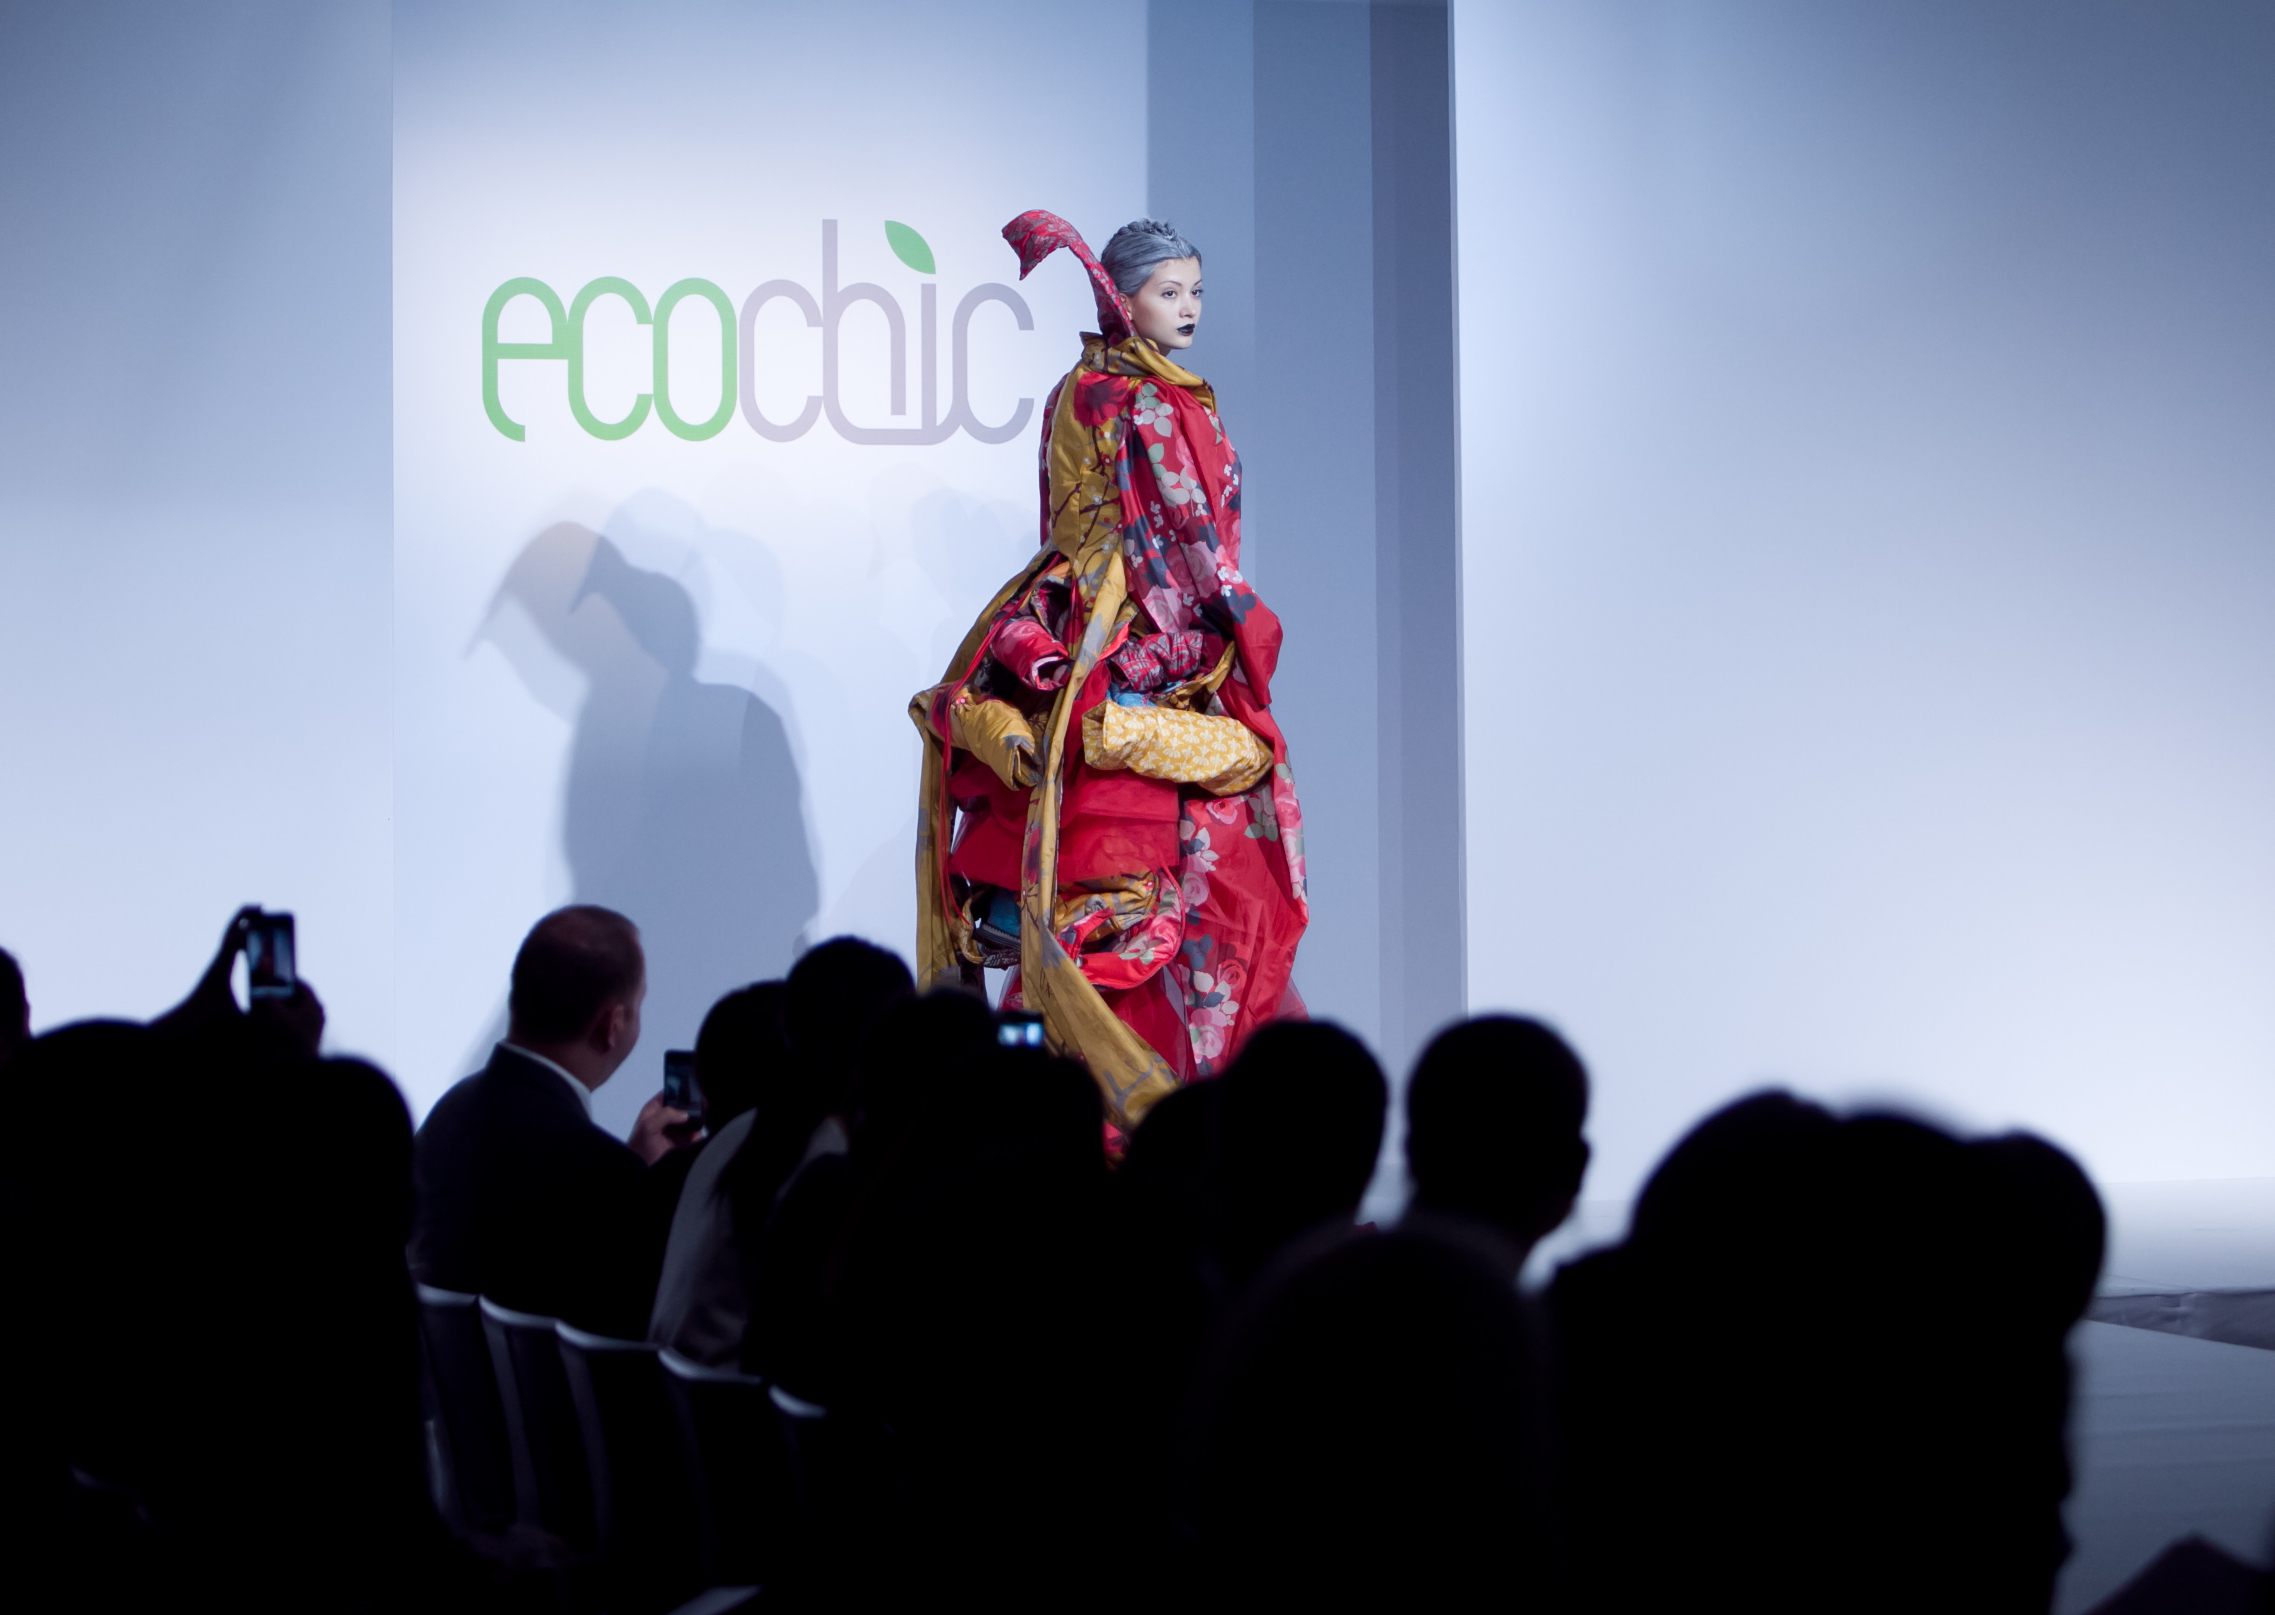 eco-couture-gown-made-from-envirosax-by-amit-ayalon-copy.jpg